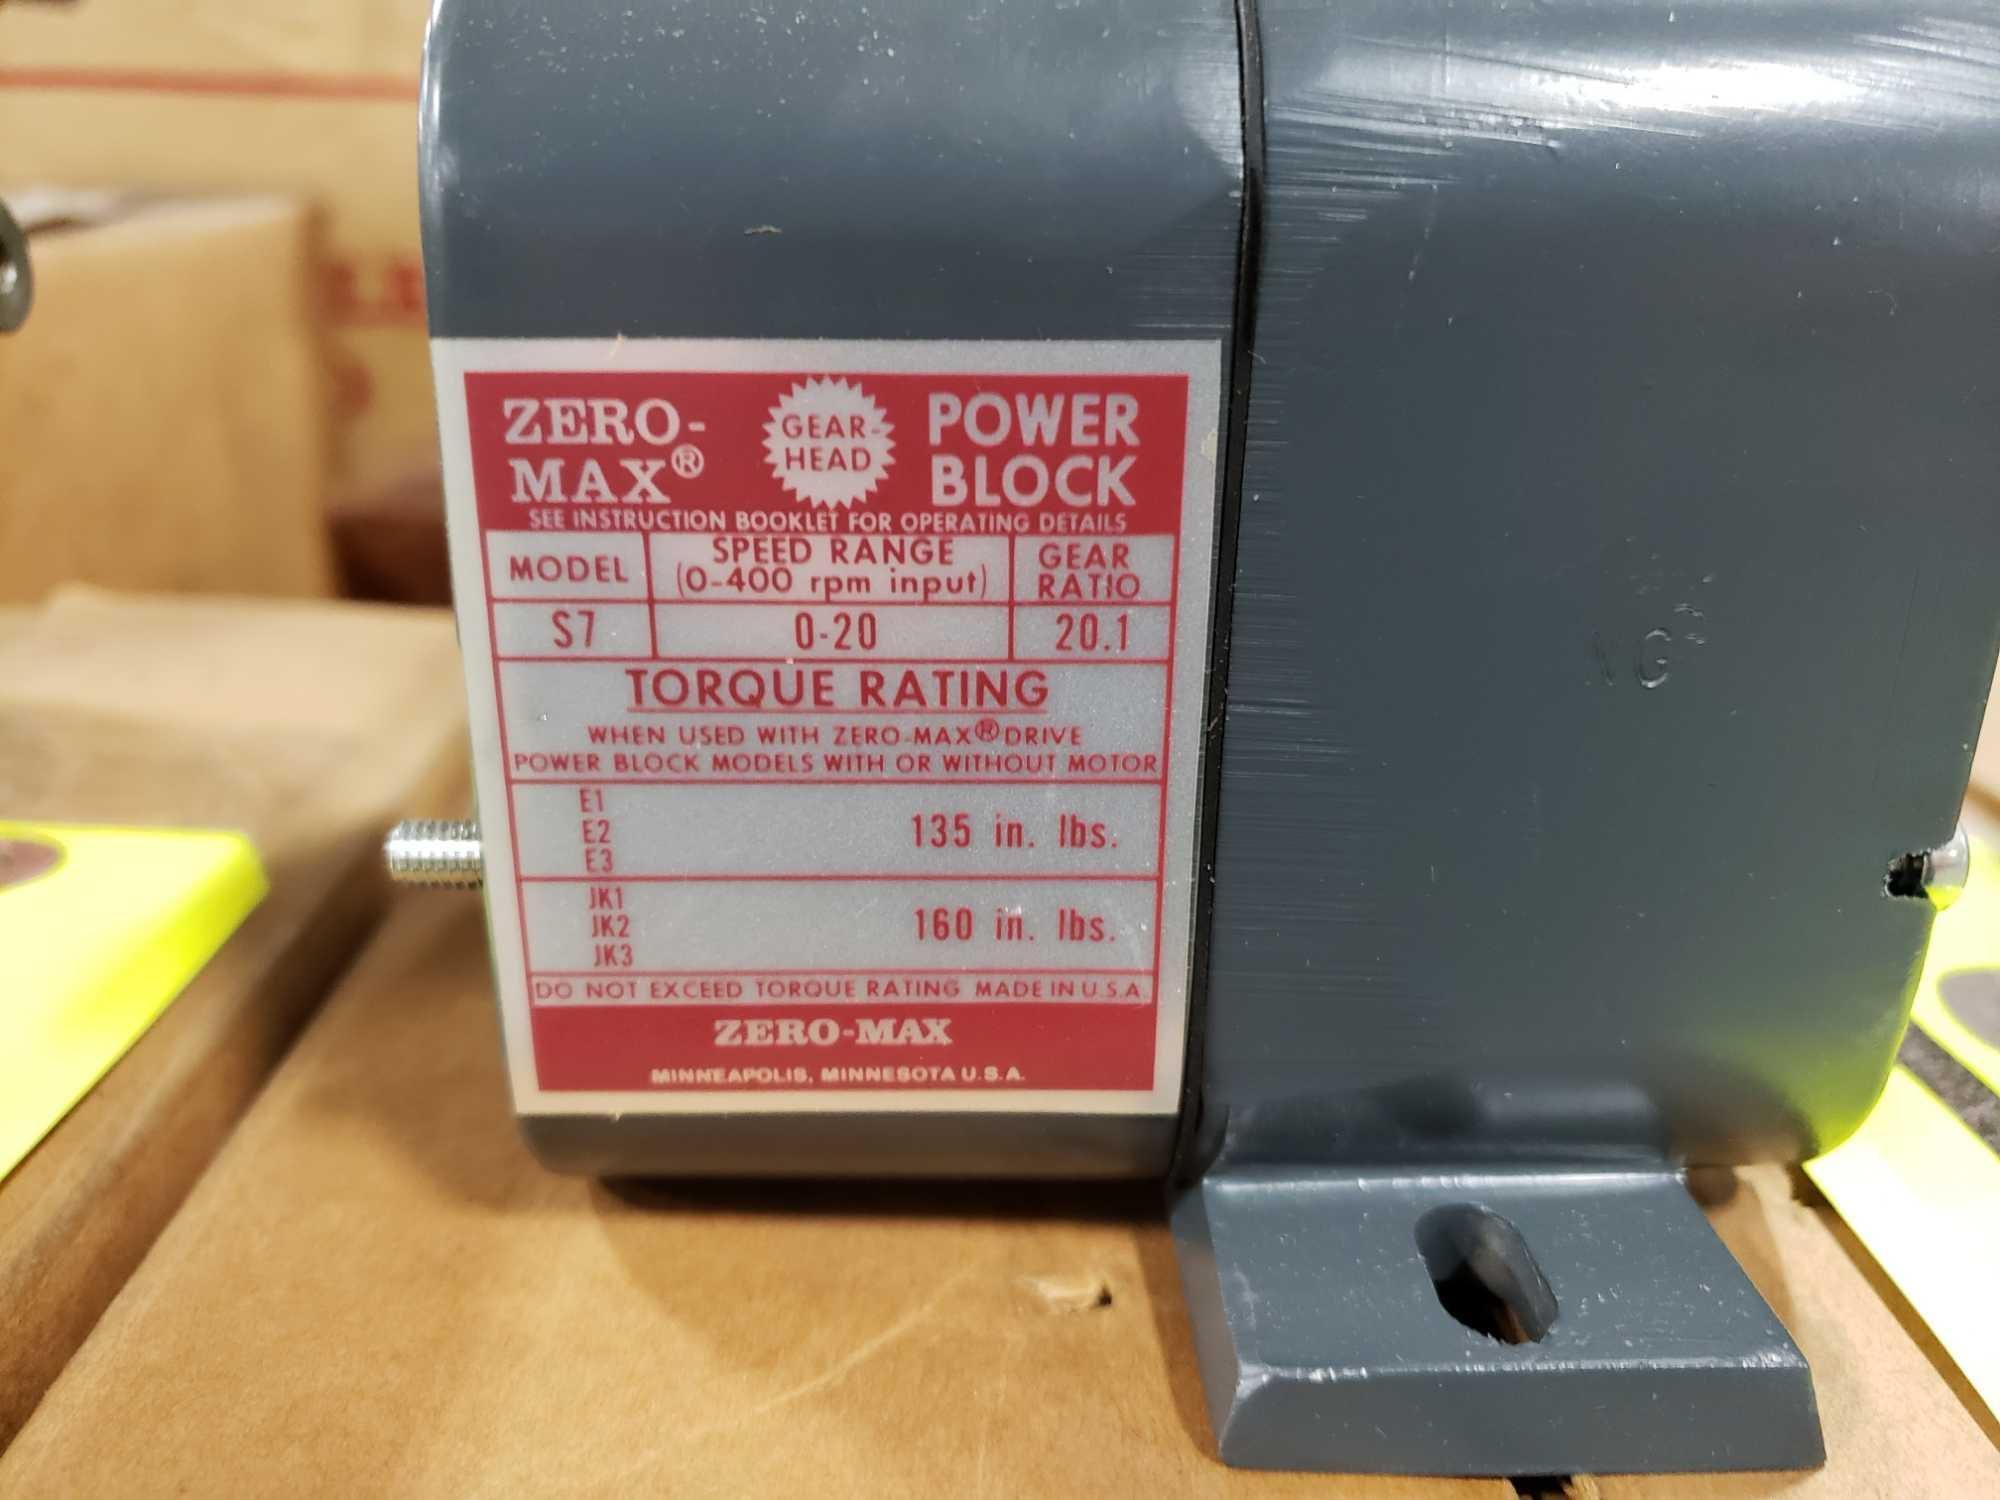 Zero-max gearhead power block model S7, 0-20 output rotation, 12lb torque, 20:1 range. New in box. - Image 2 of 3